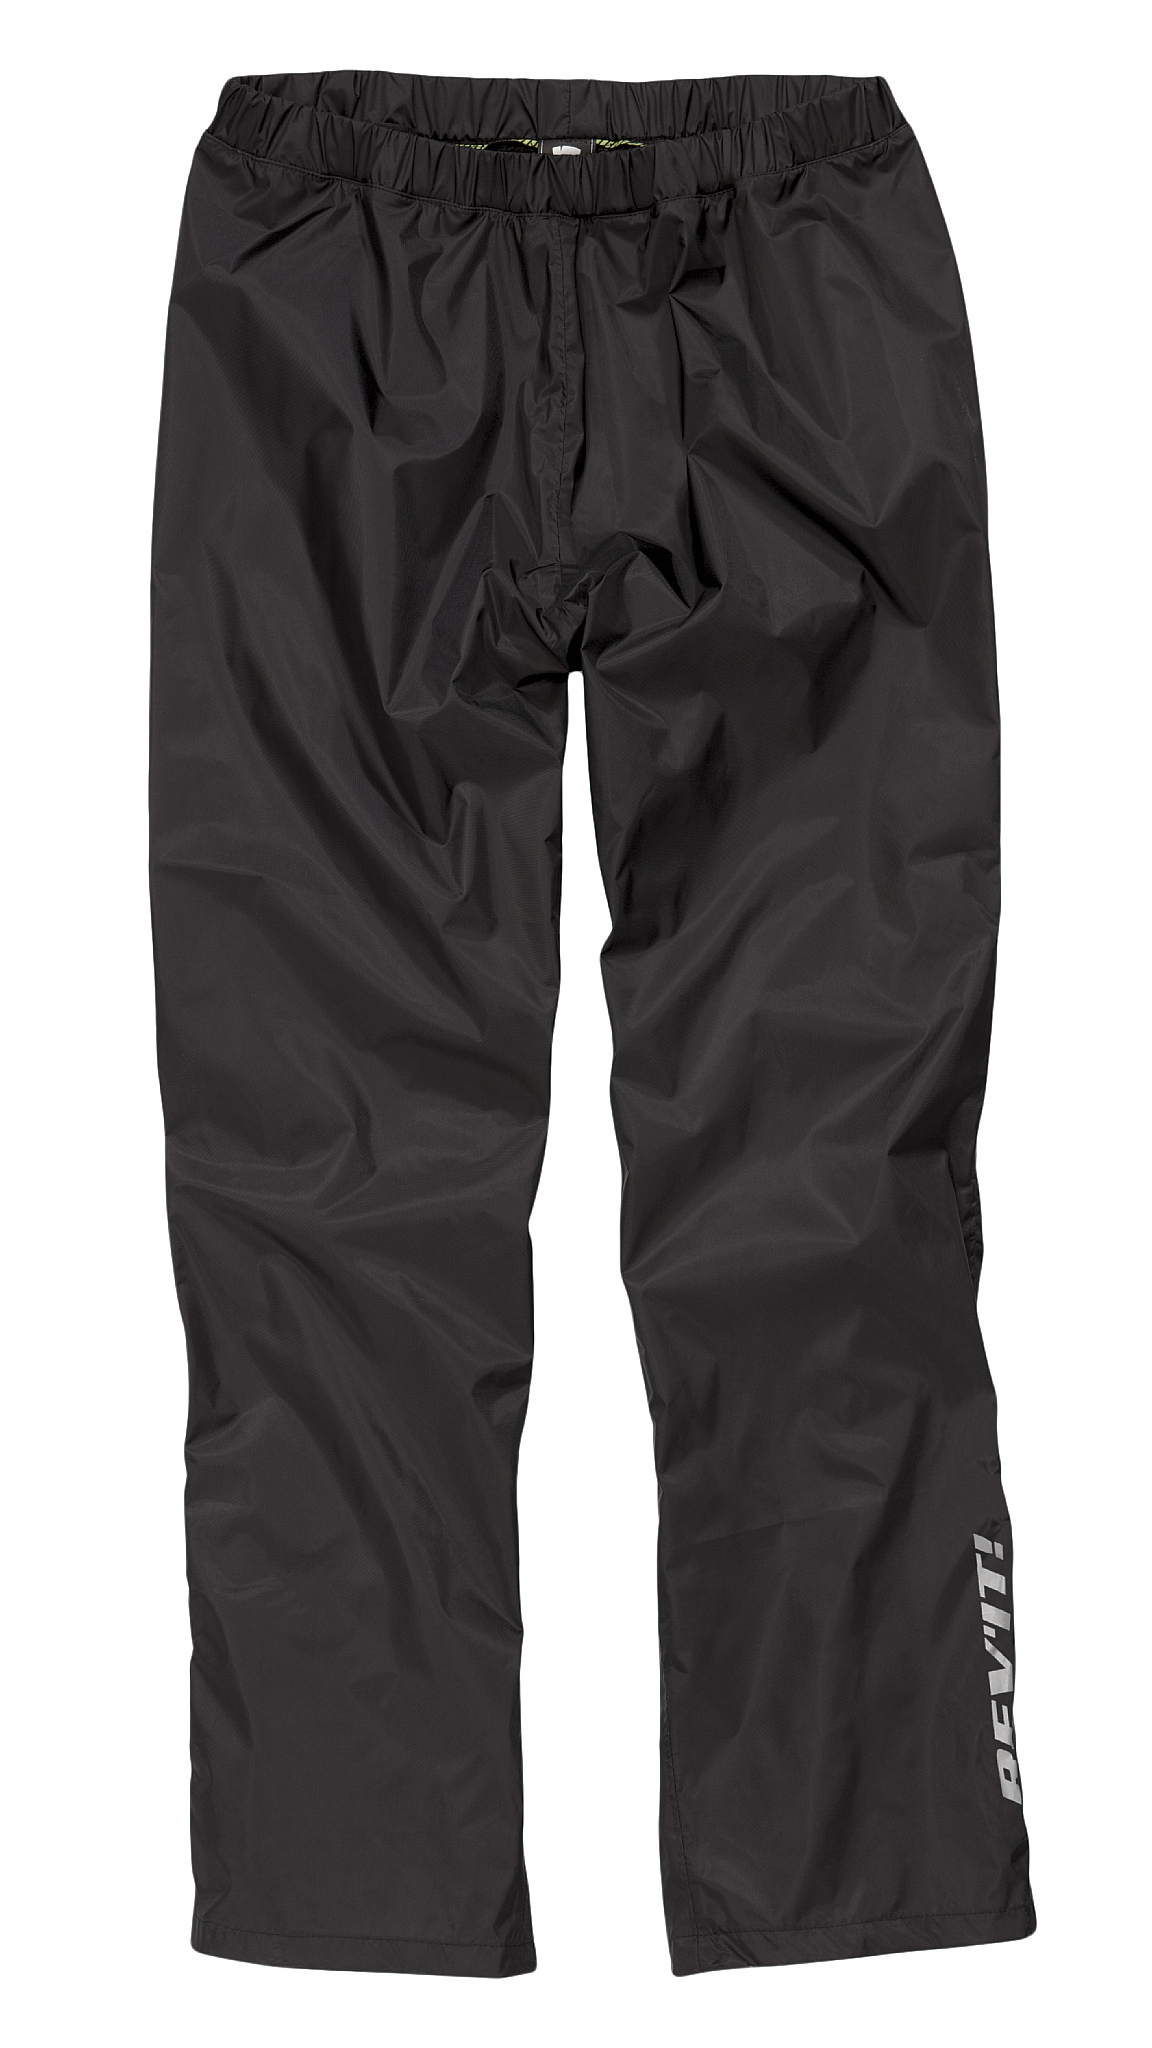 Pantaloni antipioggia Rev'it Acid H2O